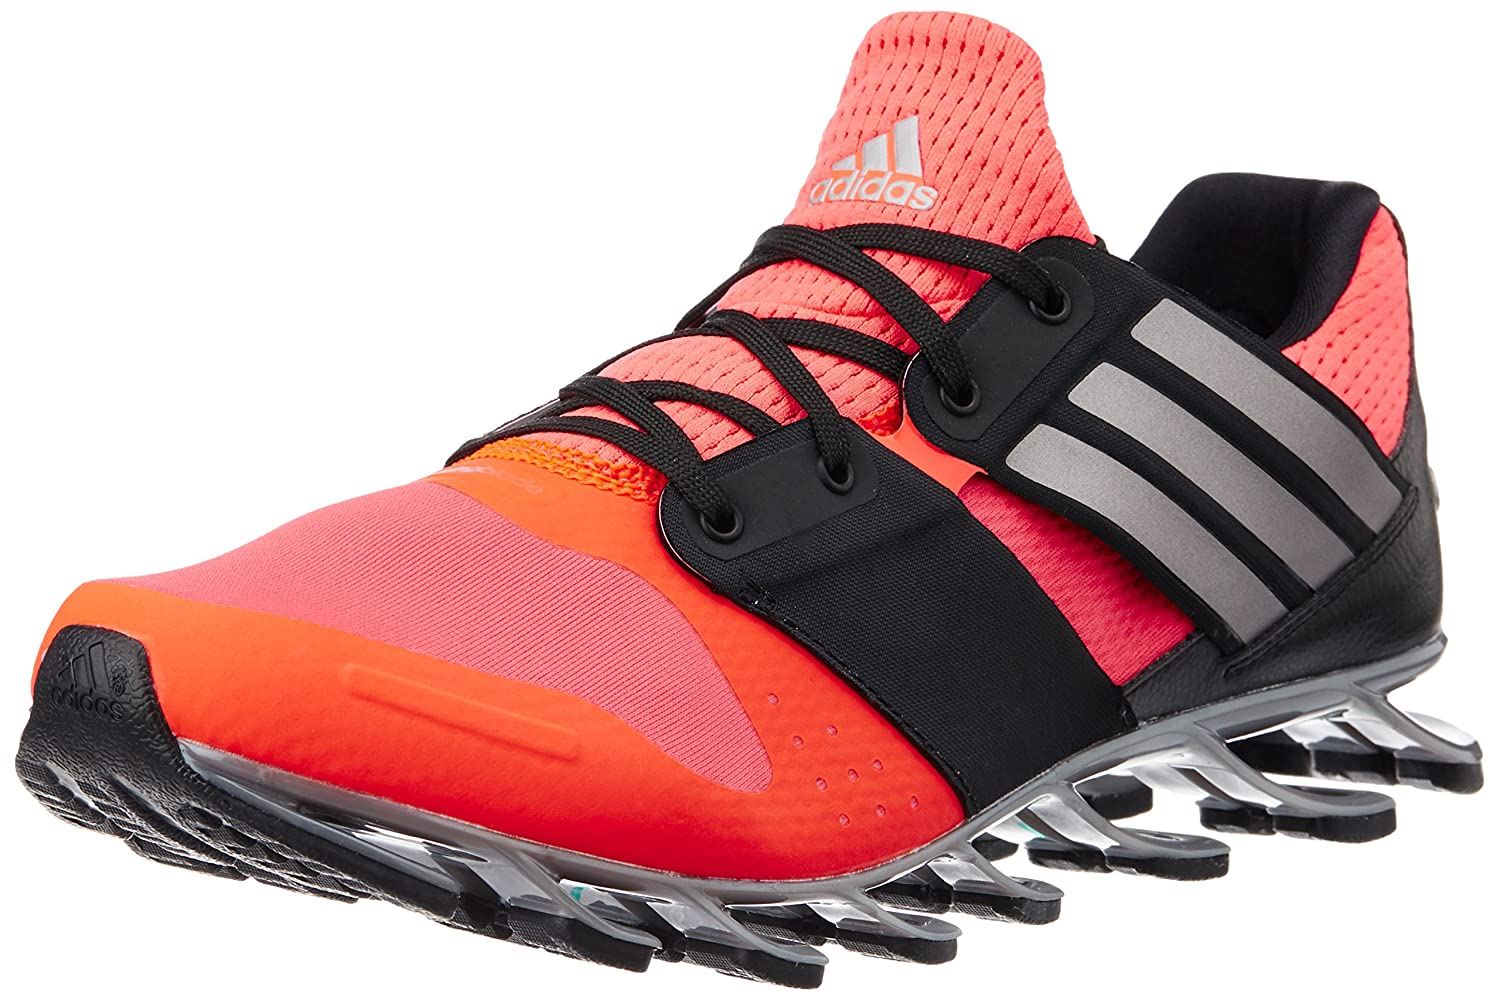 separation shoes e0ecc ddacc Adidas Men s Springblade Solyce Red, Silver and Black Mesh Running Shoes -  8 UK  Buy Online at Low Prices in India - Amazon.in